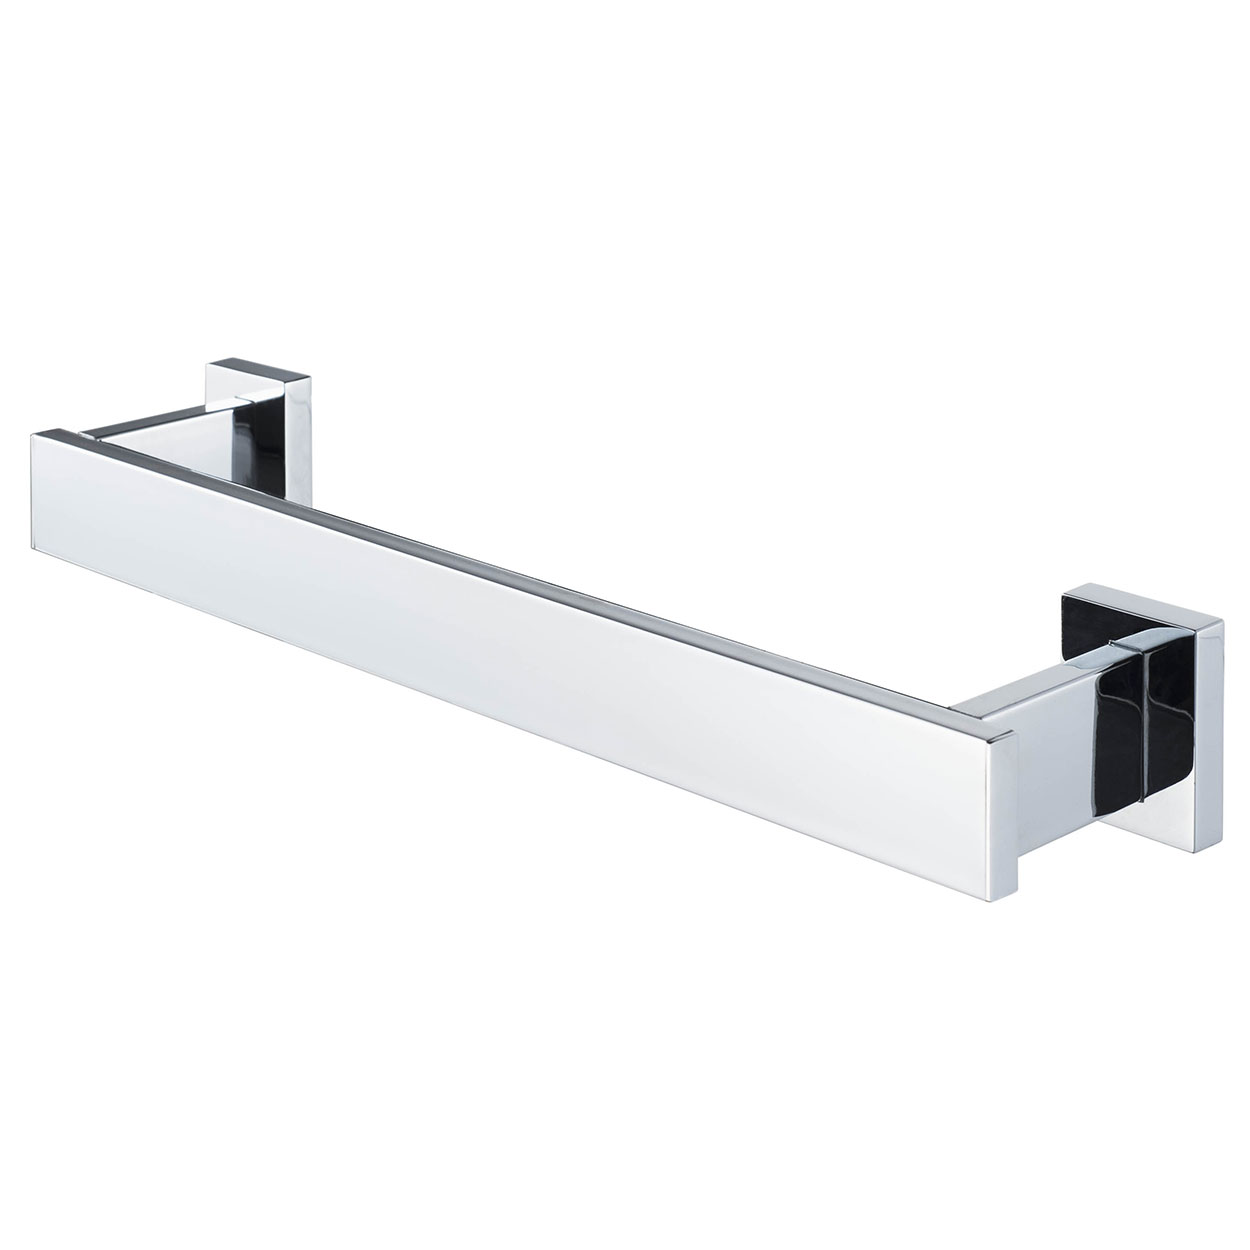 Haceka Edge Towel Rail, 328mm Wide, Chrome